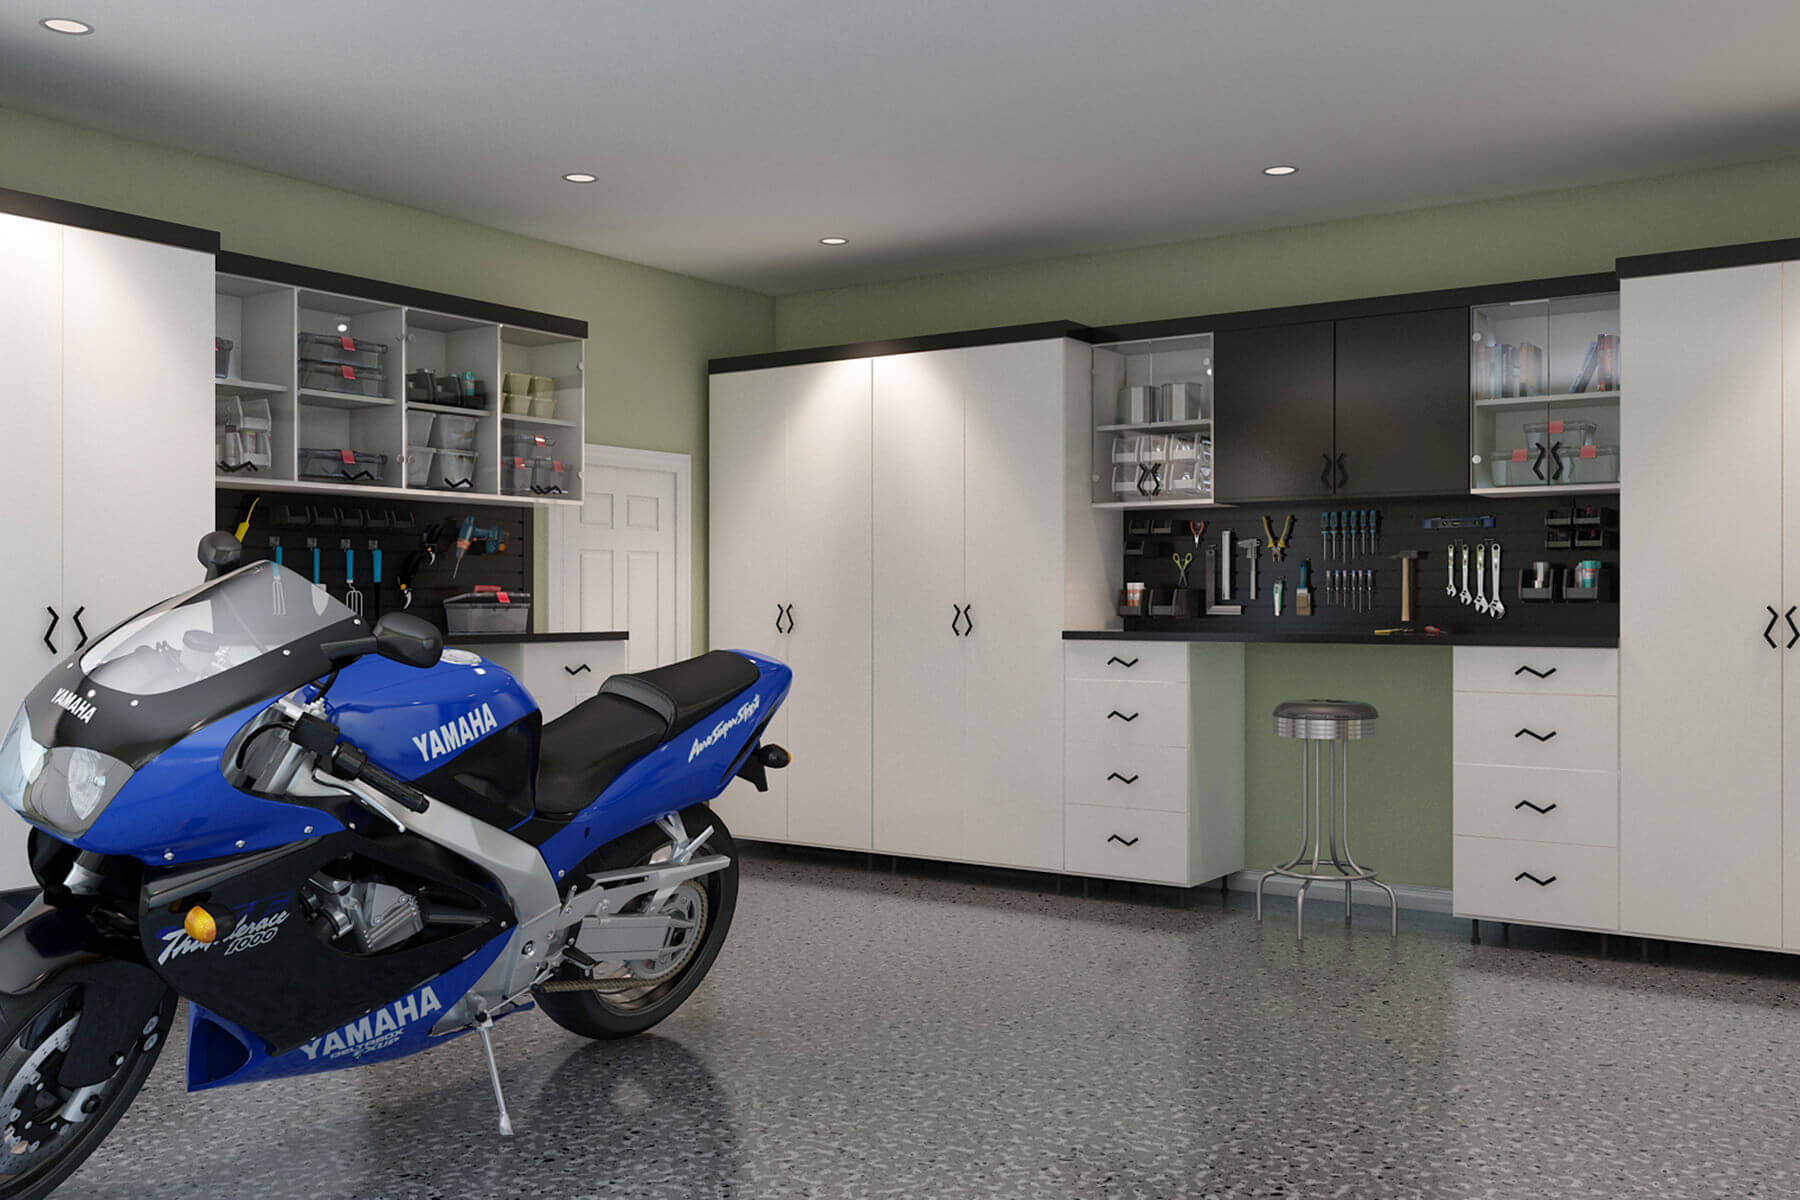 A modern design is achieved in this garage of black and white melamine cabinets with full length extrusions and butcher block countertops. There are some open shelves as well to add more storage.